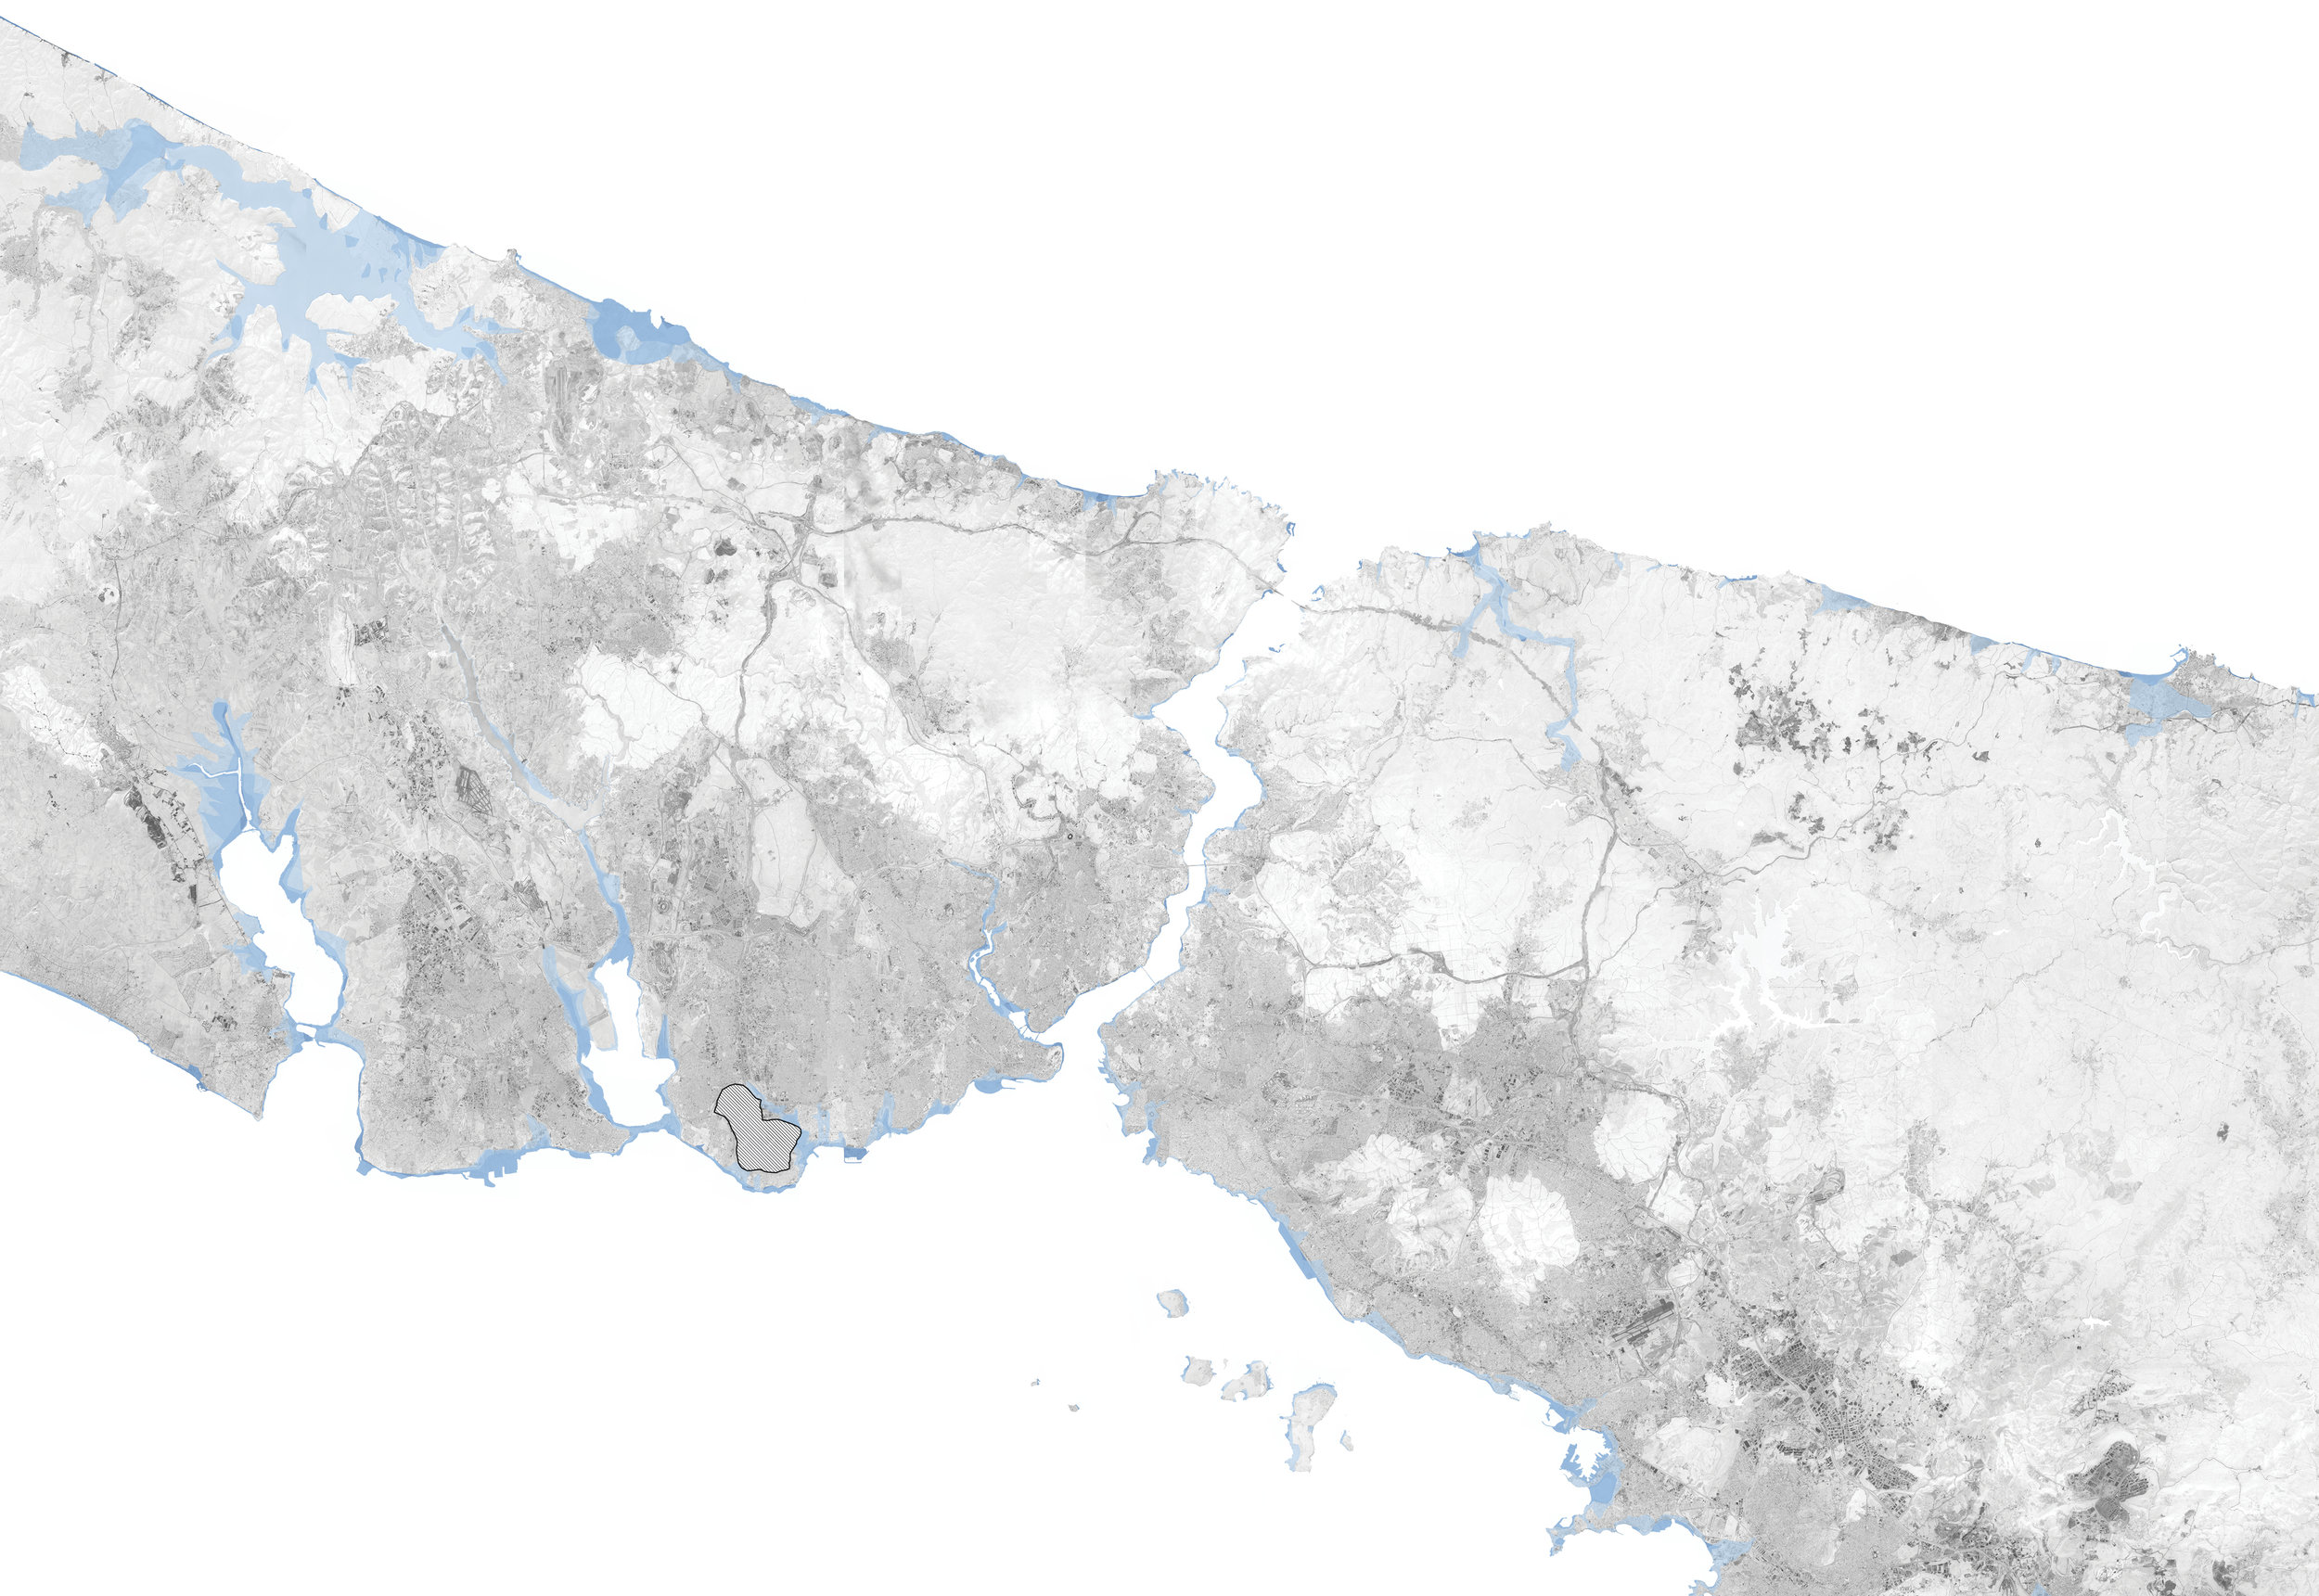 Istanbul's possible flood scenerio in 2100